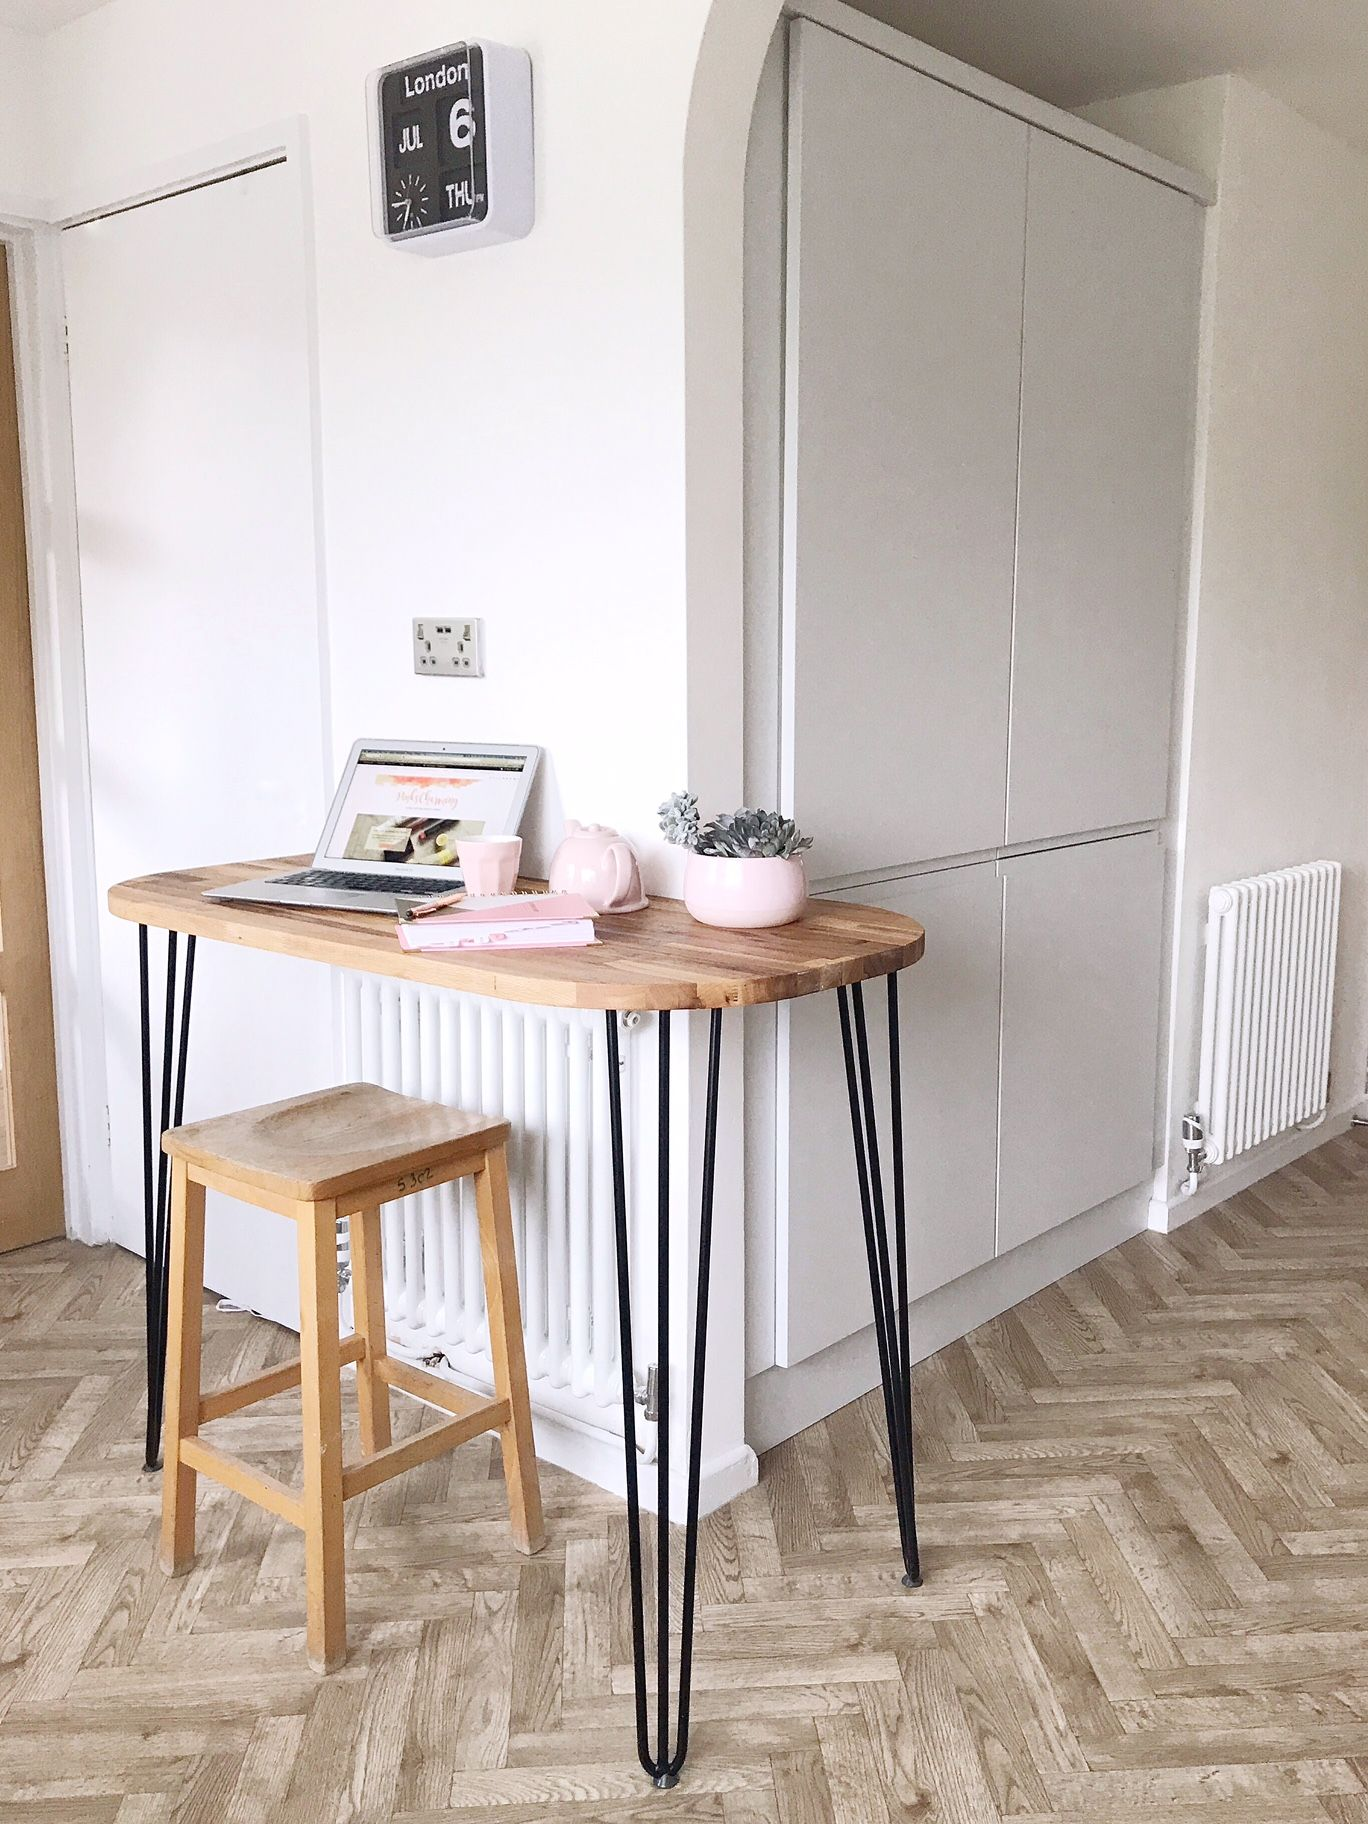 How To Make A Mid Century Inspired Breakfast Bar With Hairpin Legs